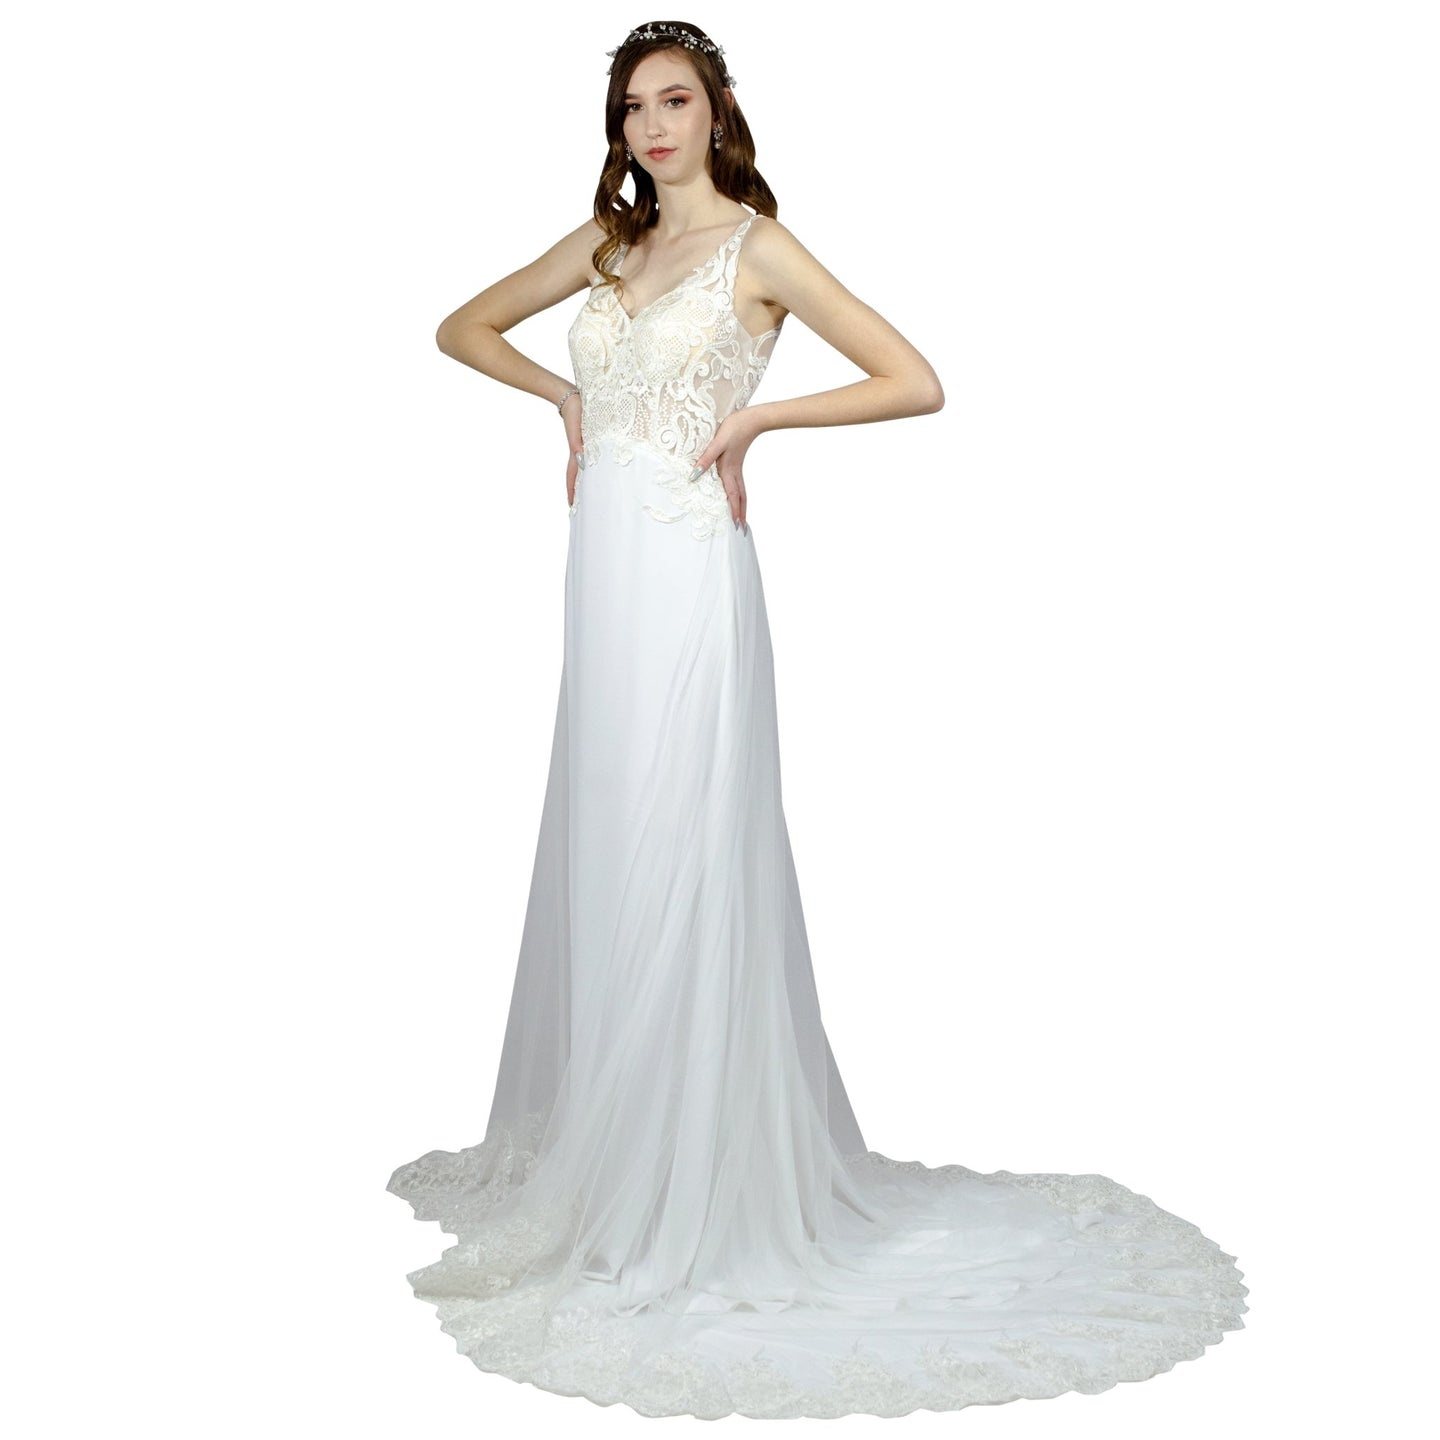 Lace Bodice Sheath Silk Crepe Wedding Dress Envious Bridal & Formal Perth Australia